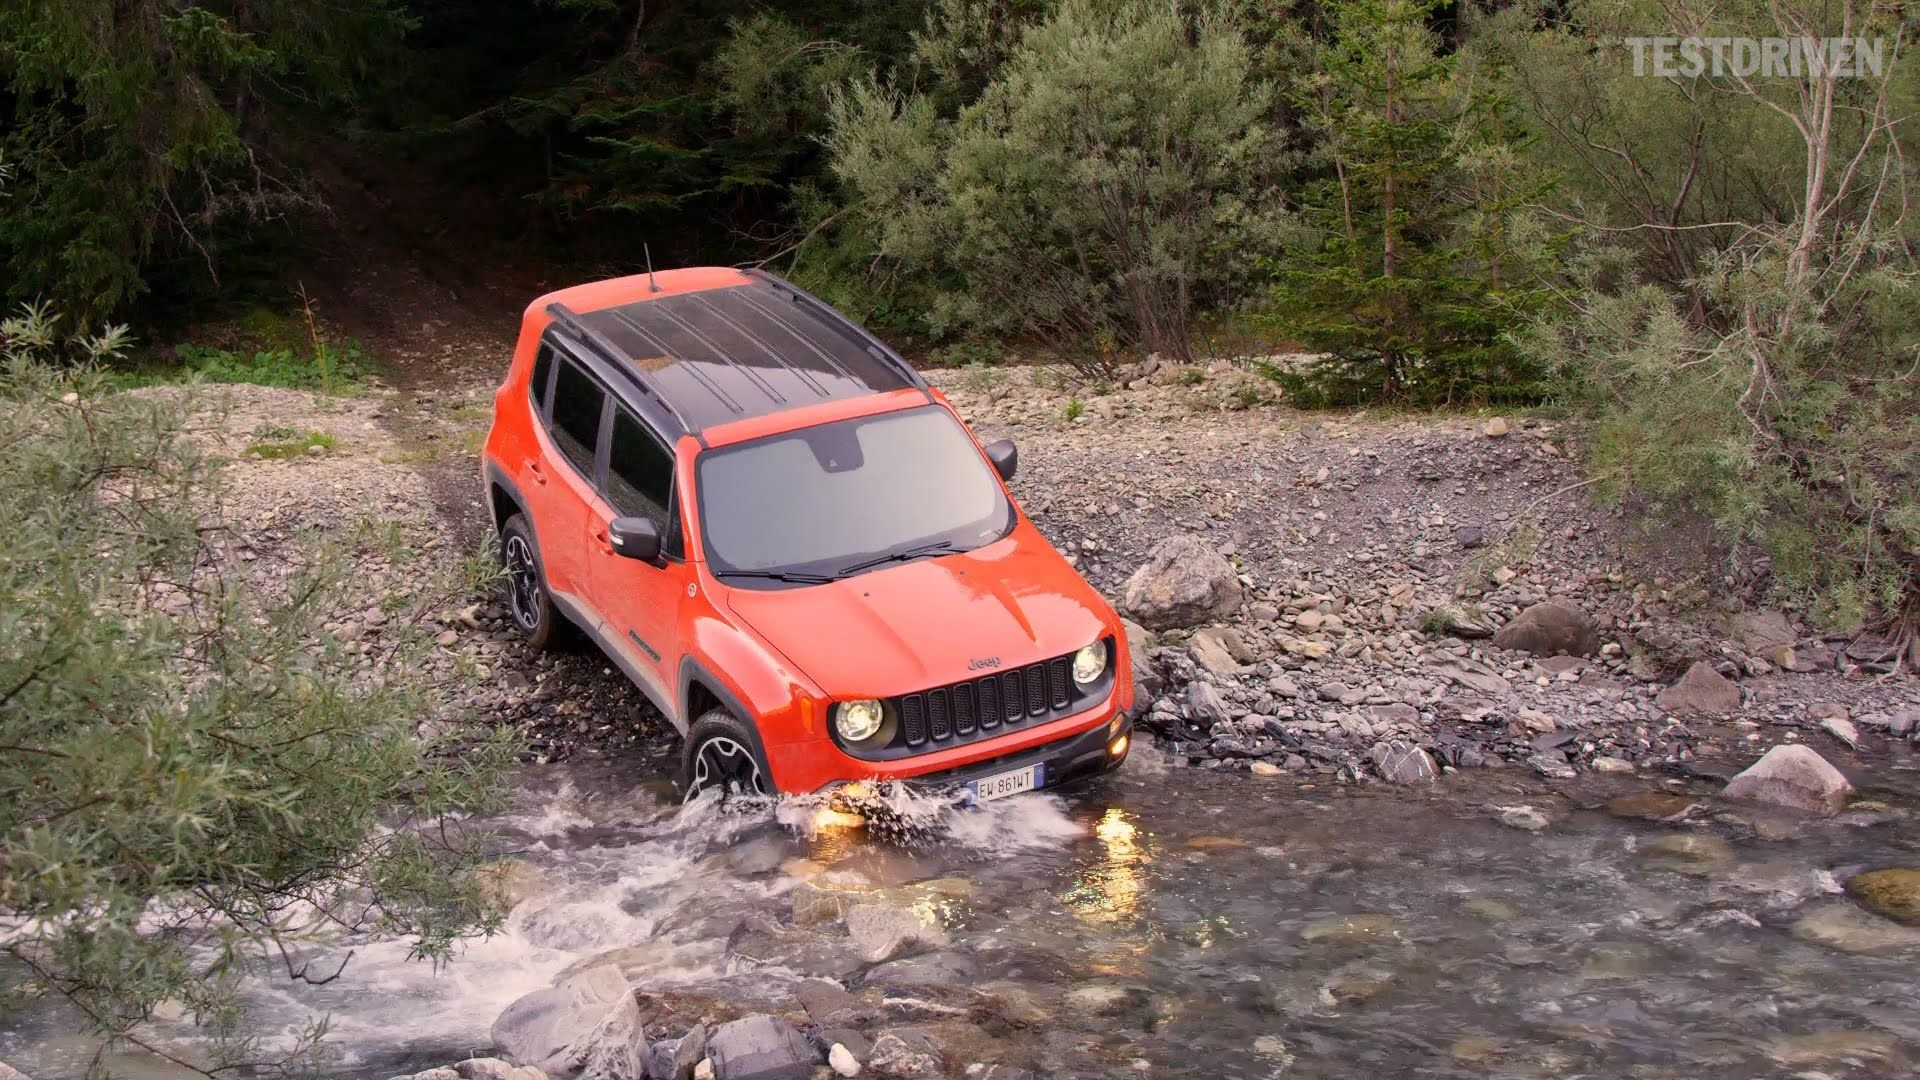 2015 Jeep Renegade Trailhawk Offroad Aerial Shots Of My Future